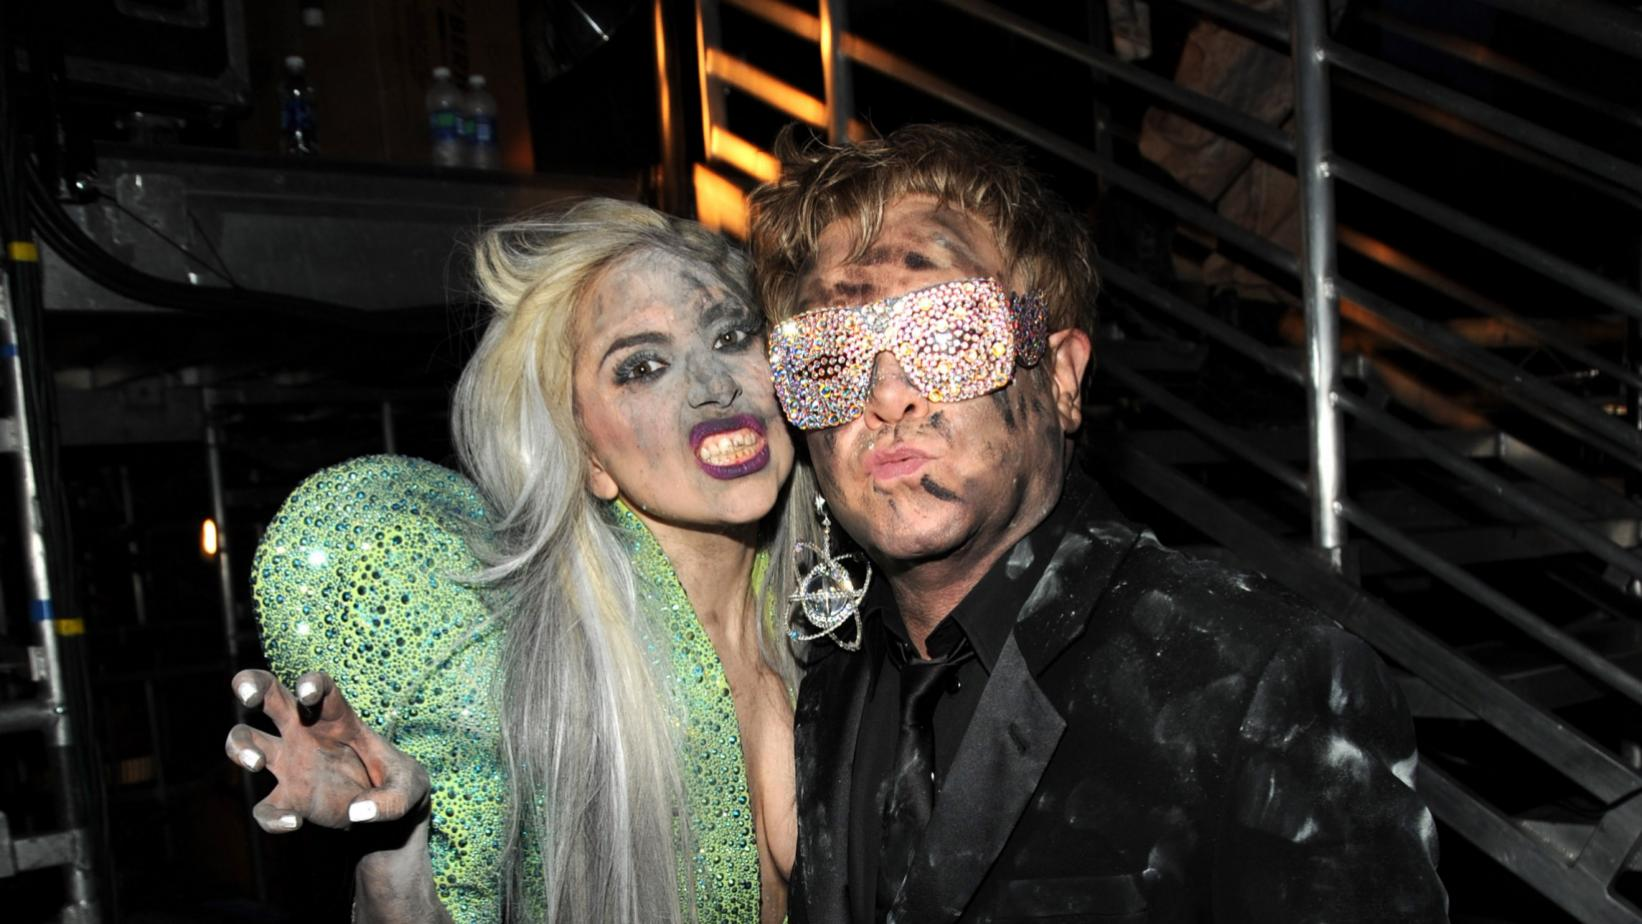 Elton John and Lady Gaga at the 52nd GRAMMY Awards in 2010